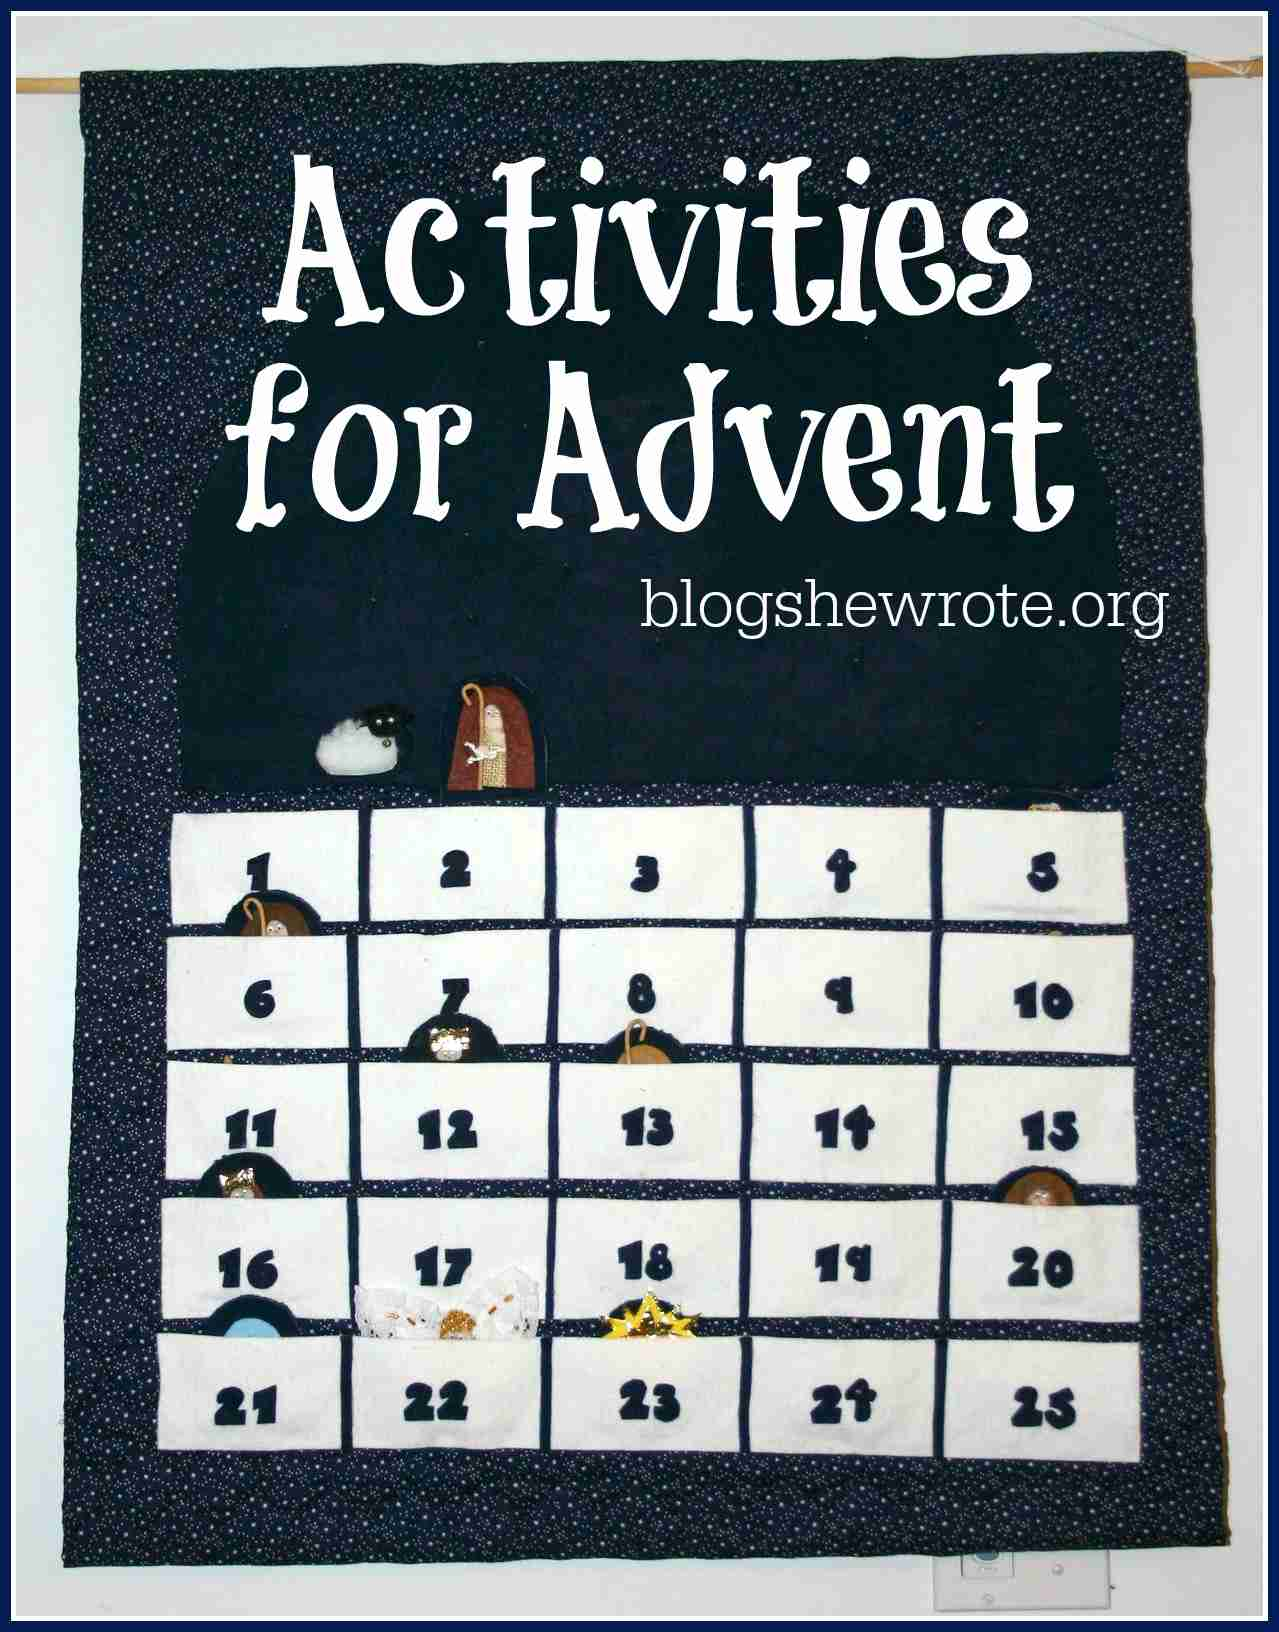 Blog, She Wrote: Activities for Advent